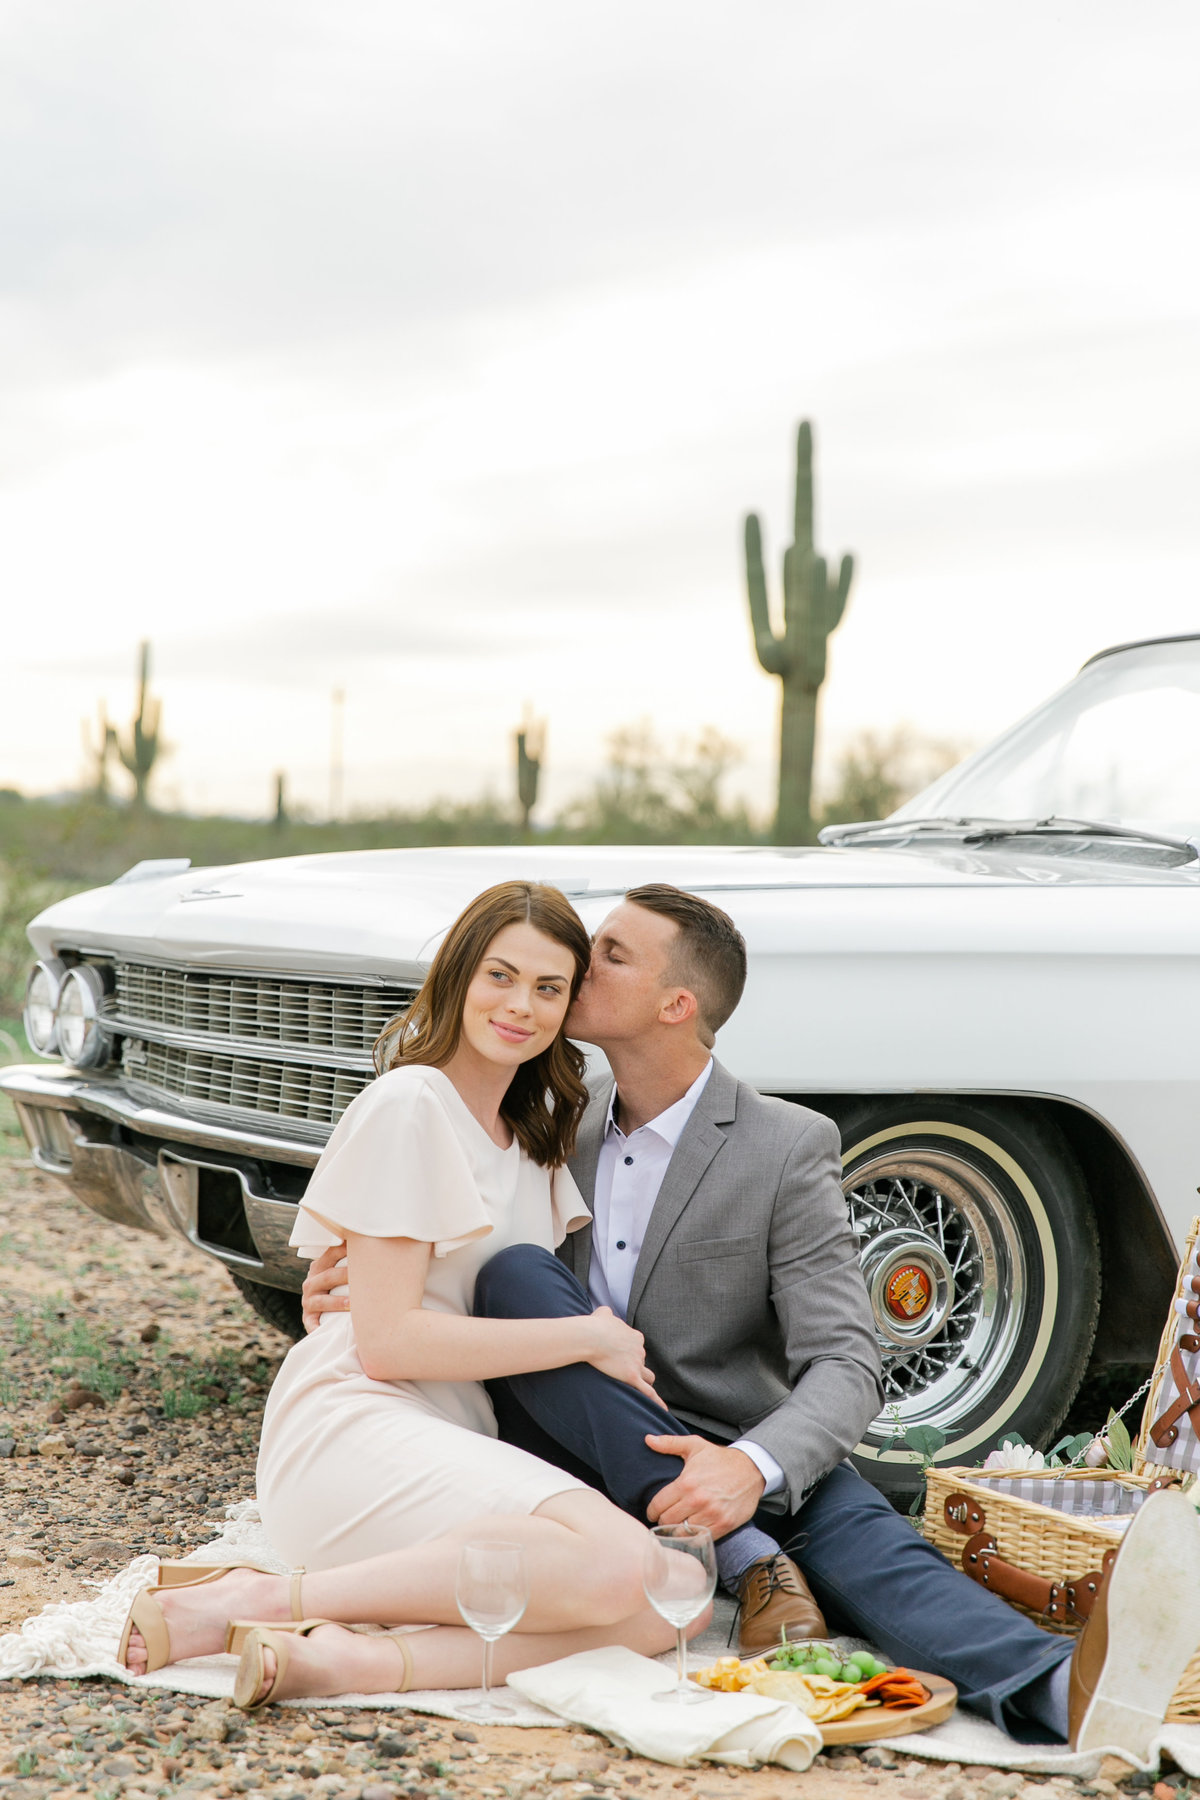 Karlie Colleen Photography - Arizona Engagement Photos- Chacey & Stefan-10